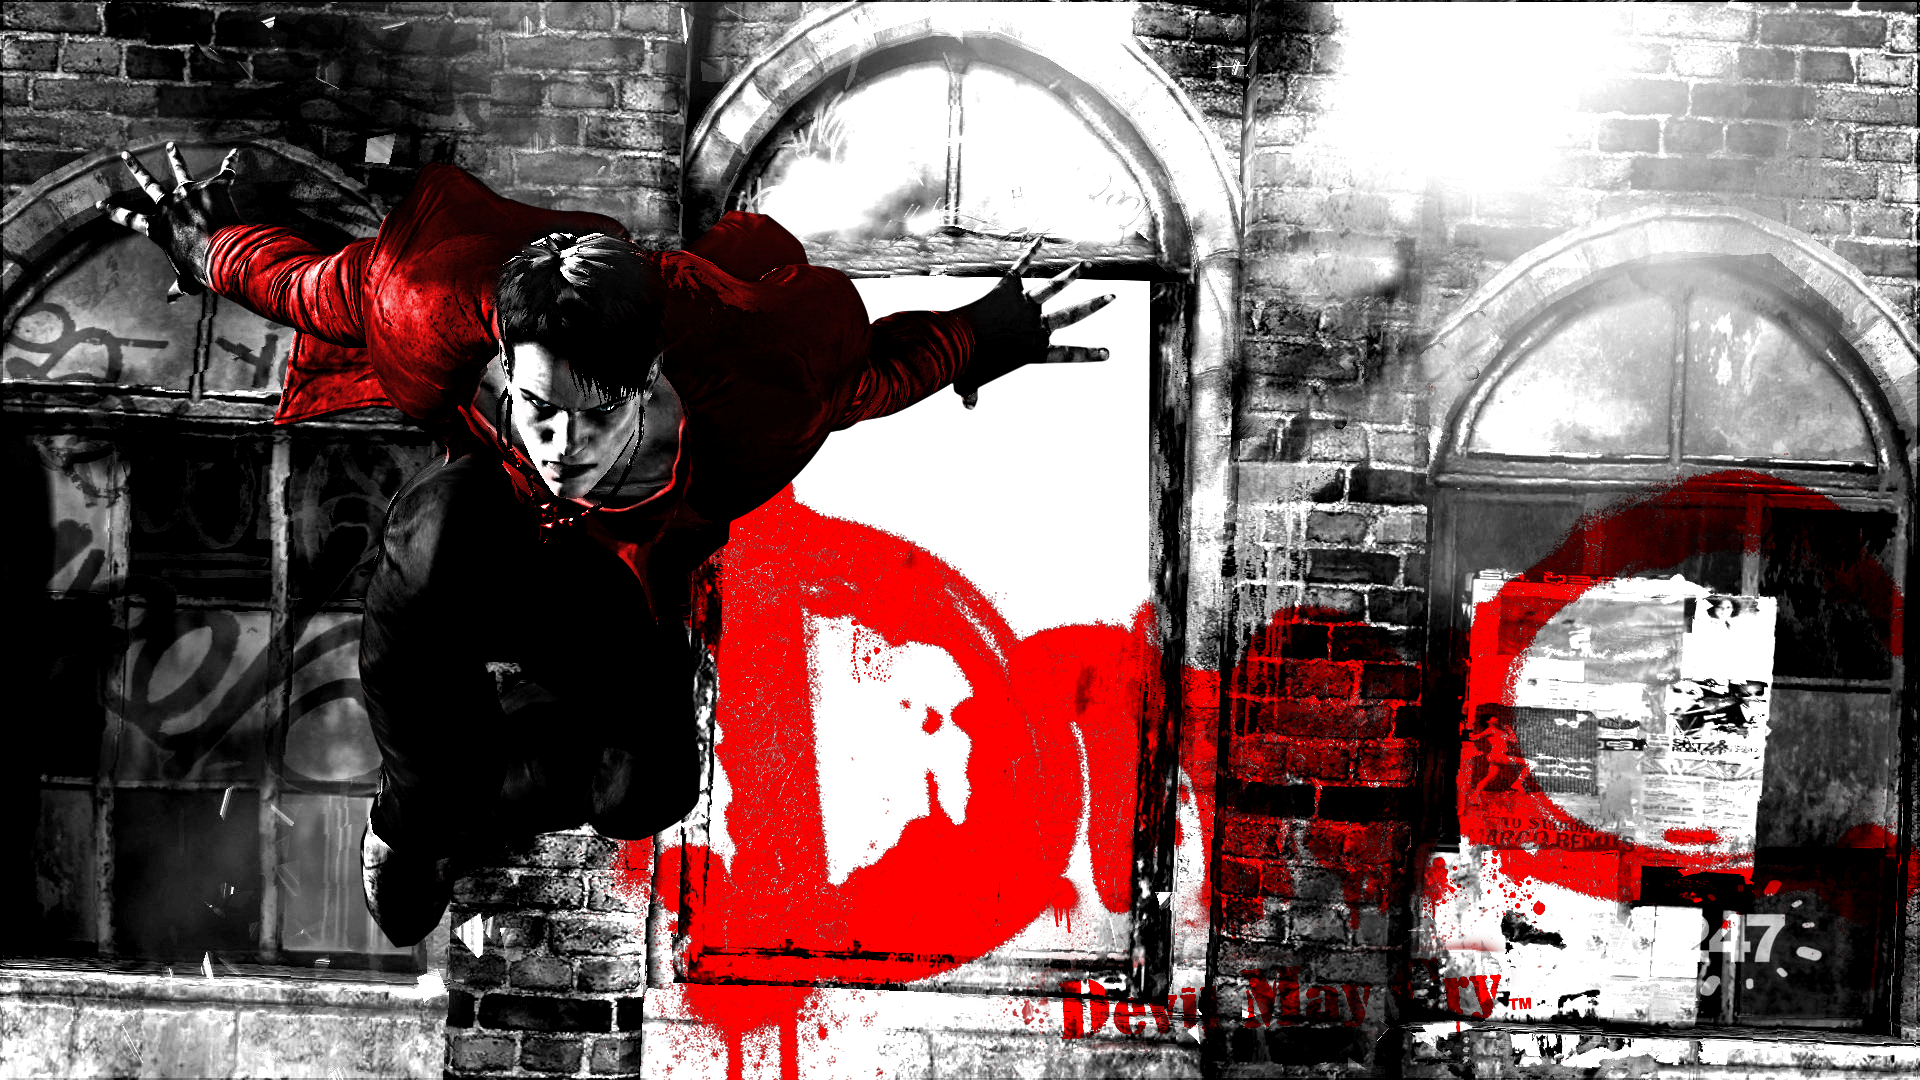 http://theologygaming.com/wp-content/uploads/2013/01/dmc_forever_red_by_acdramon-d4apooc.jpg